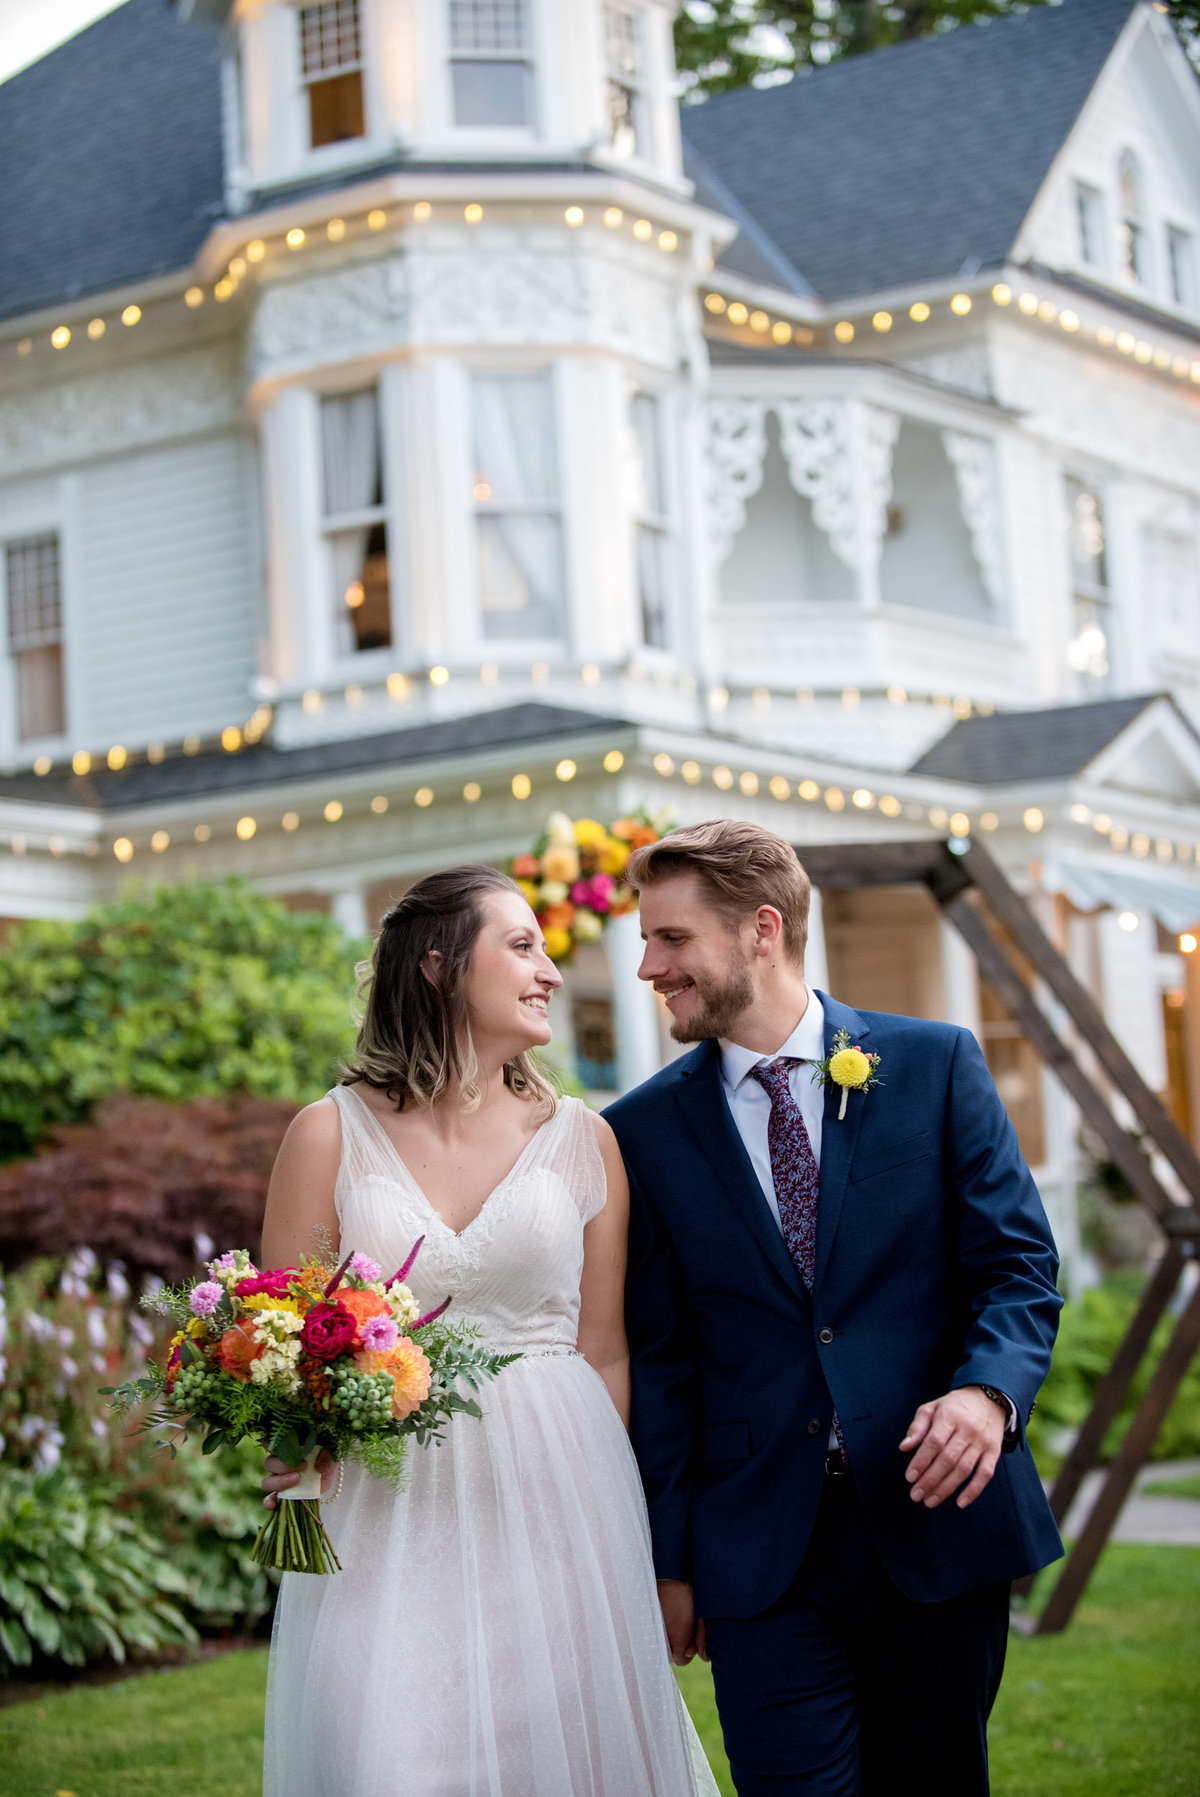 Victorian Belle Mansion Wedding190715-16